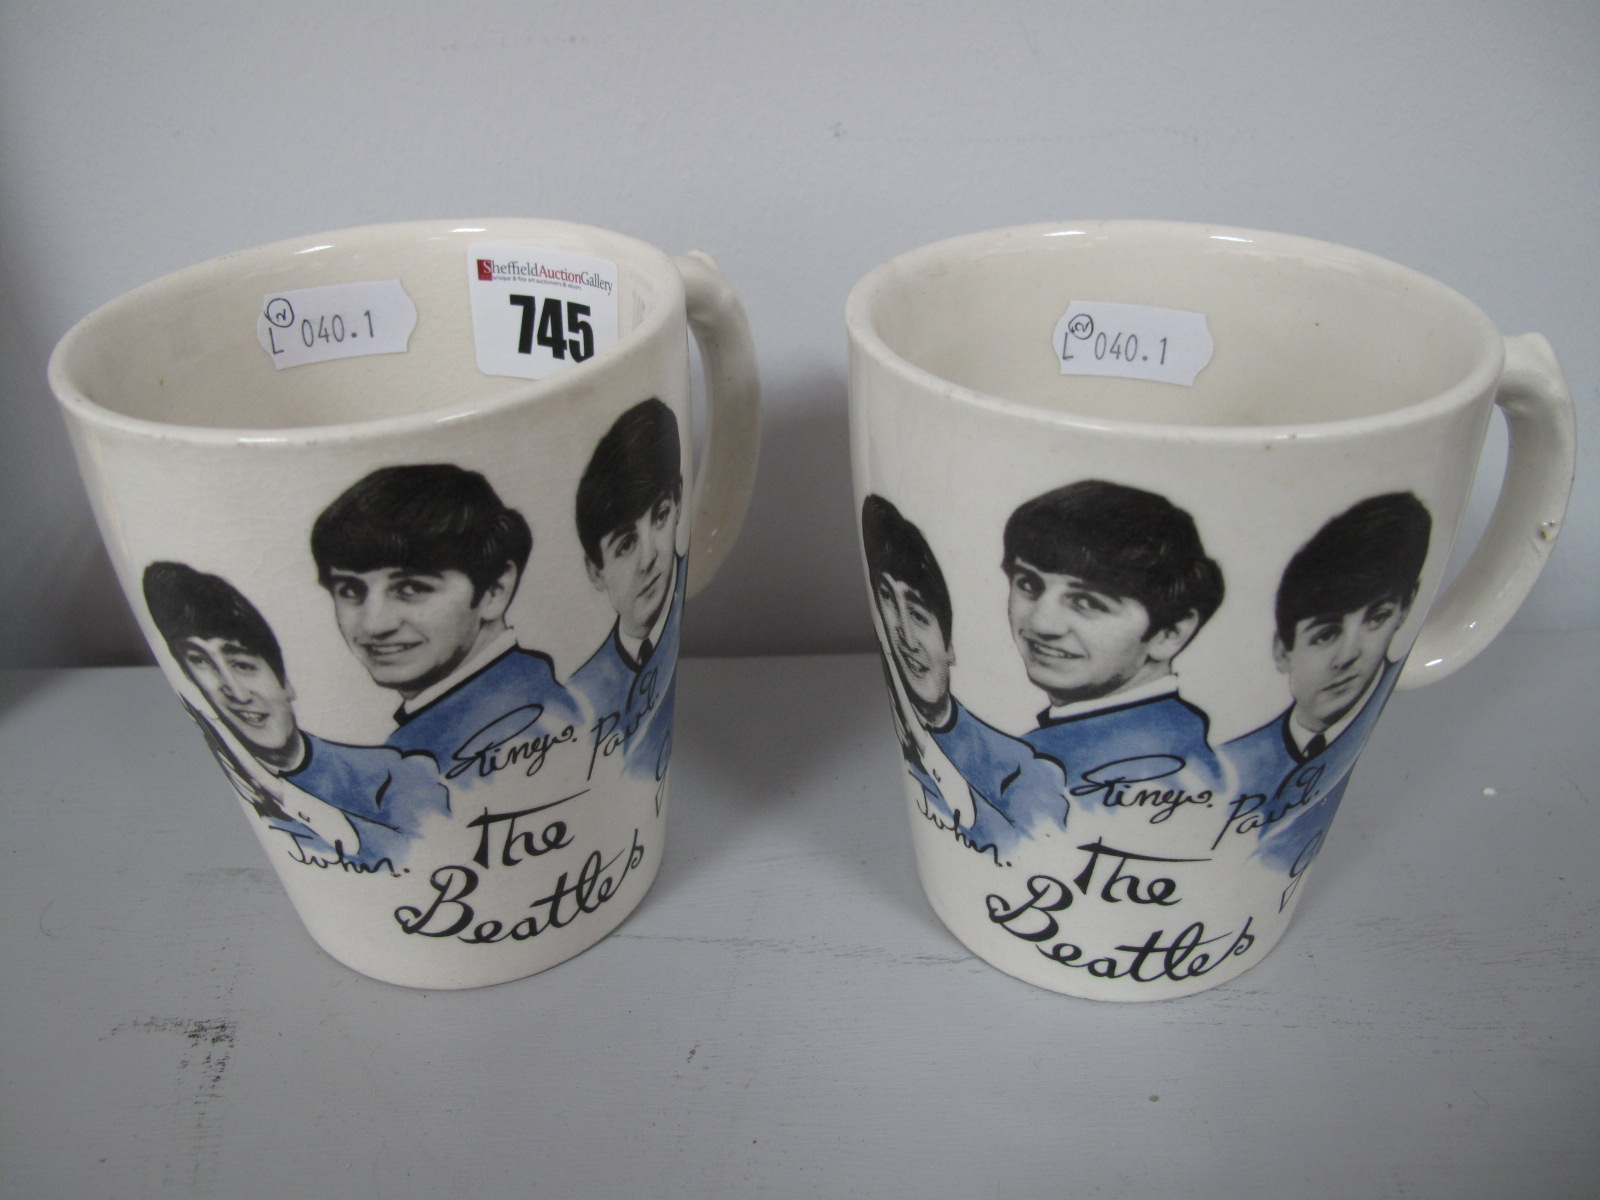 Lot 745 - Beatles Memorabilia- A Pair of 1960's Beatles Pottery Cups, printed 'The Beatles' with each band